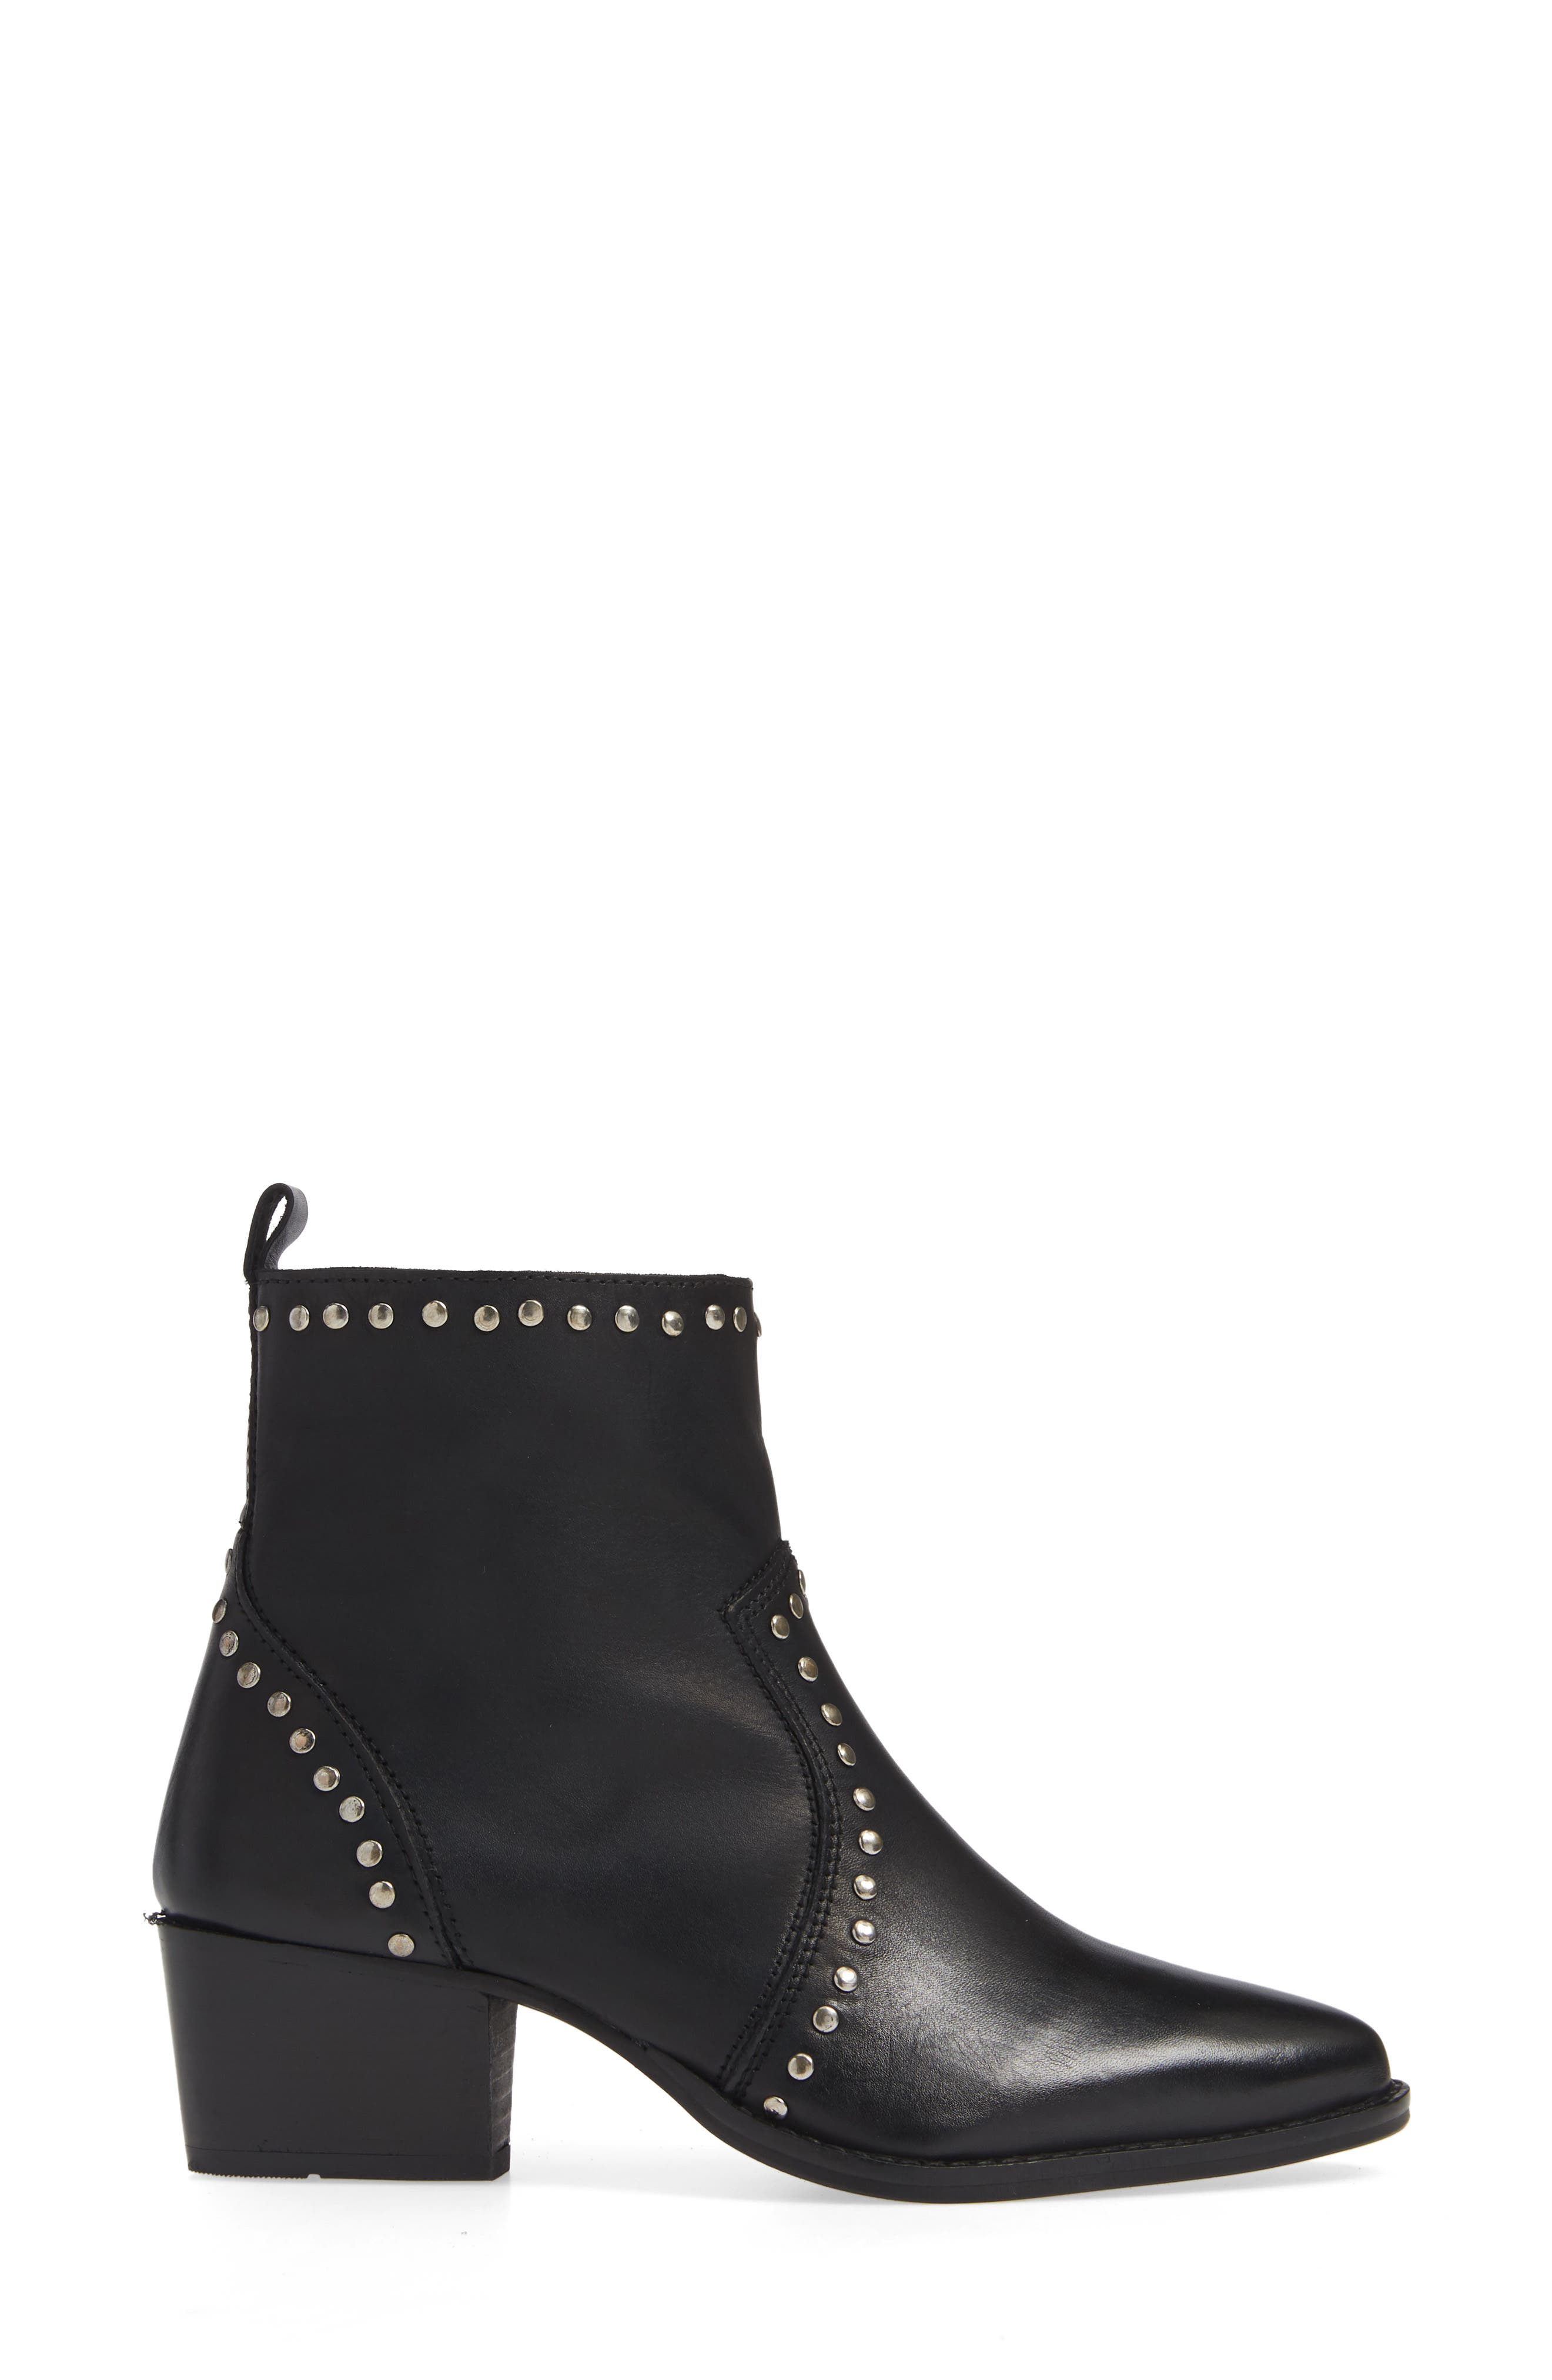 CHARLES BY CHARLES DAVID, Zye Bootie, Alternate thumbnail 3, color, BLACK LEATHER